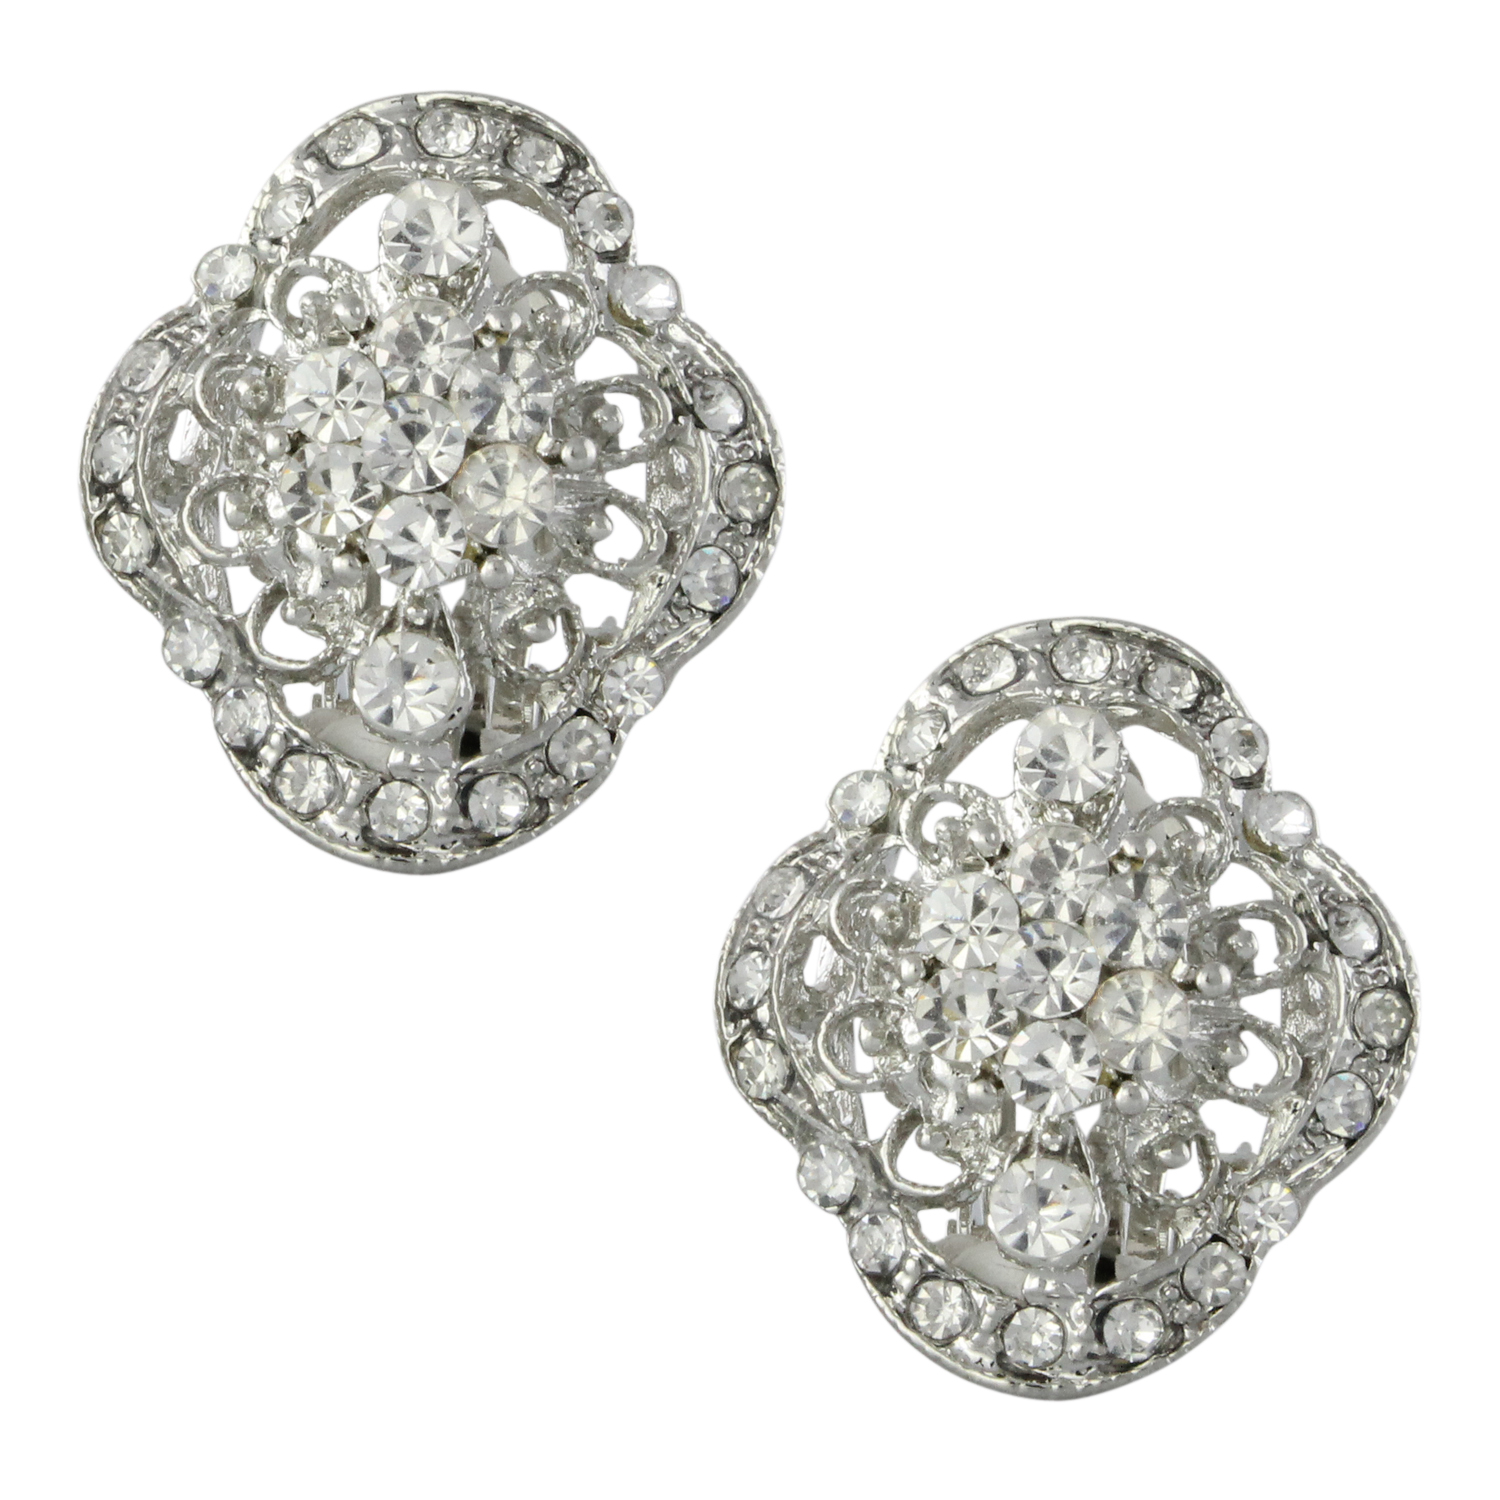 Art Deco Duchess Clip On Earrings